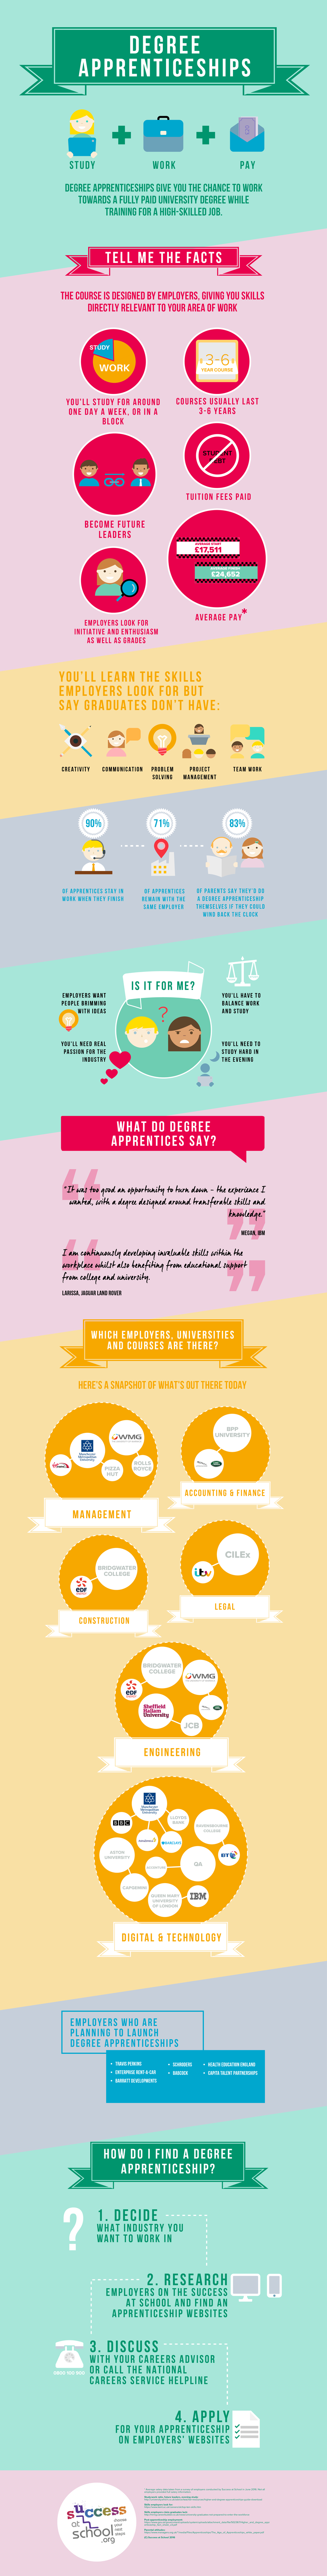 Degree apprenticeships infographic